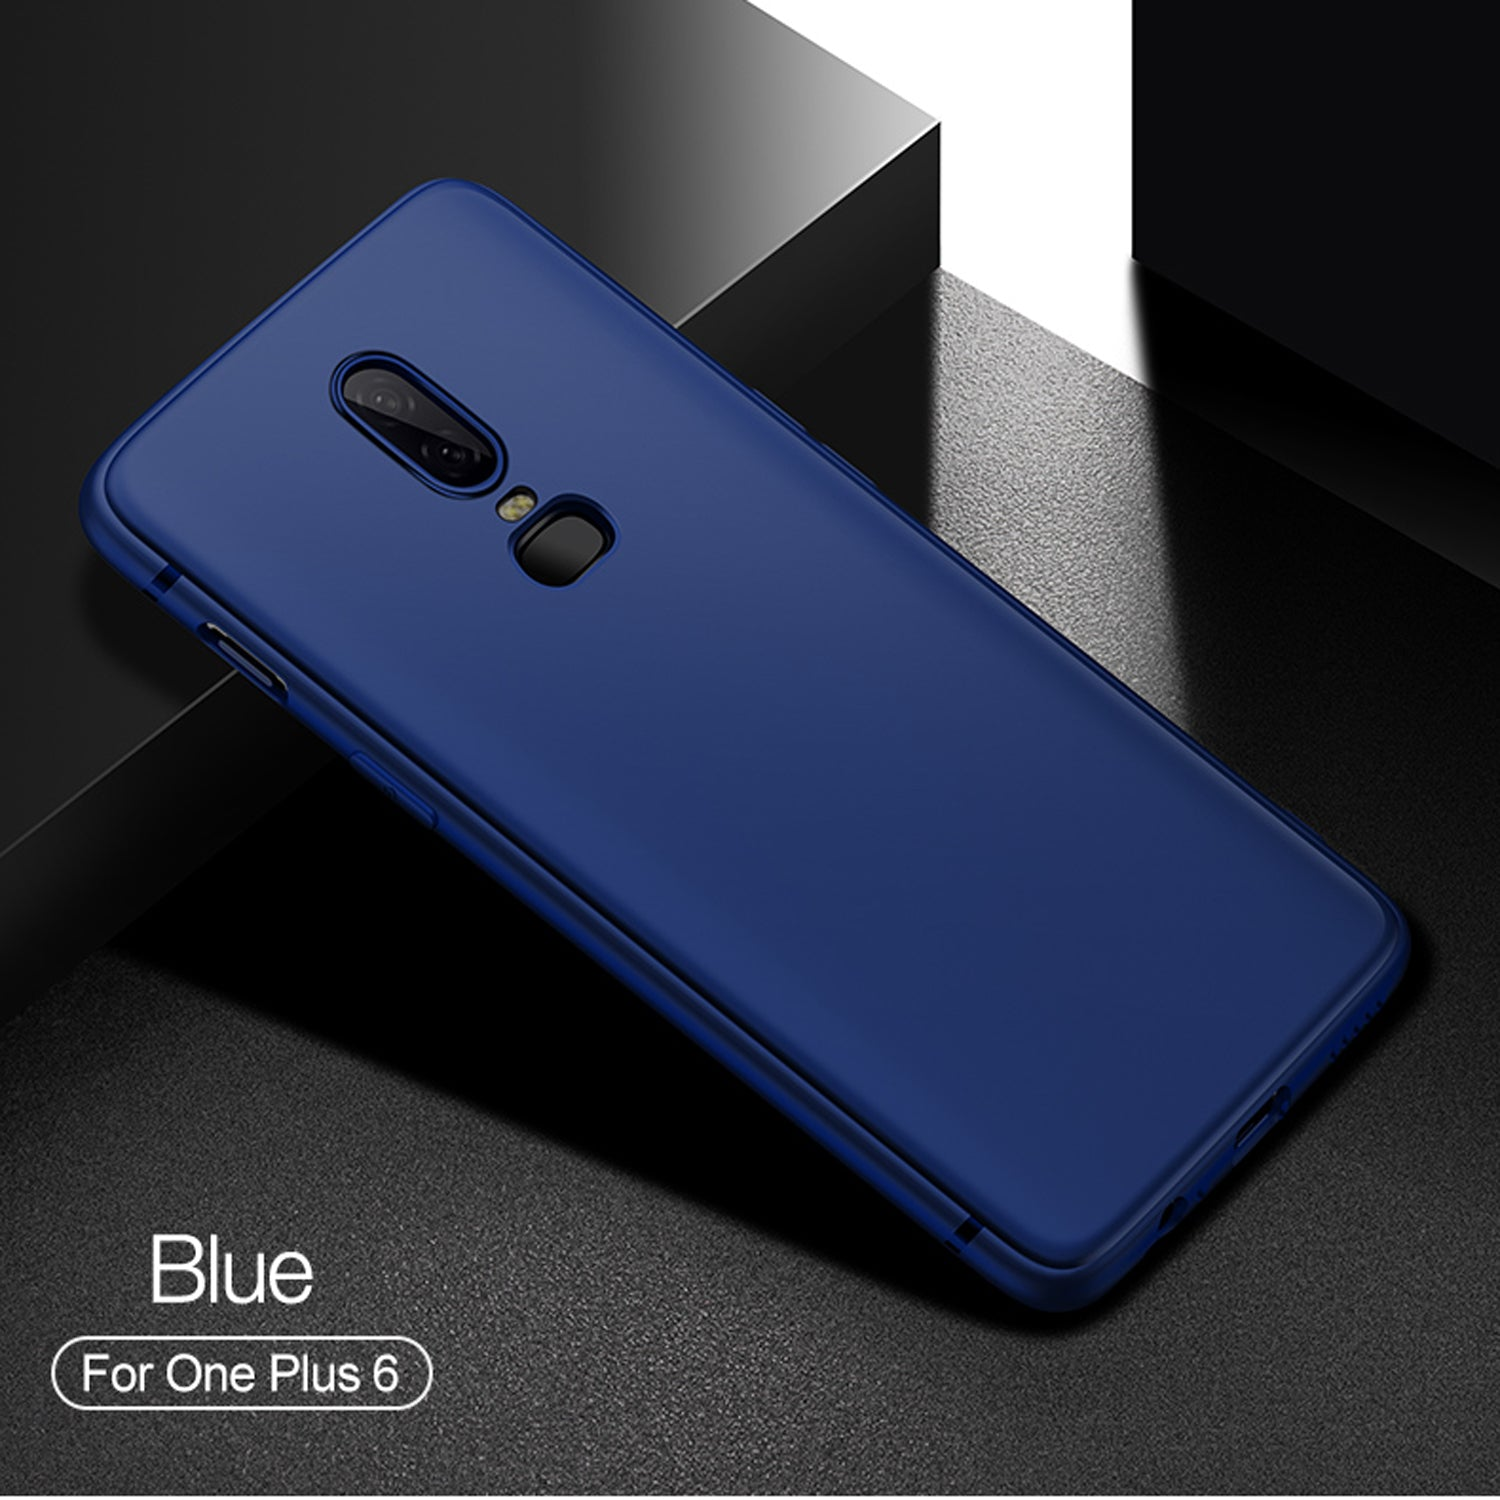 Colored Matte Flexible Ultra Thin Protective Back Case Cover for Oneplus 6 - Blue - Mobizang